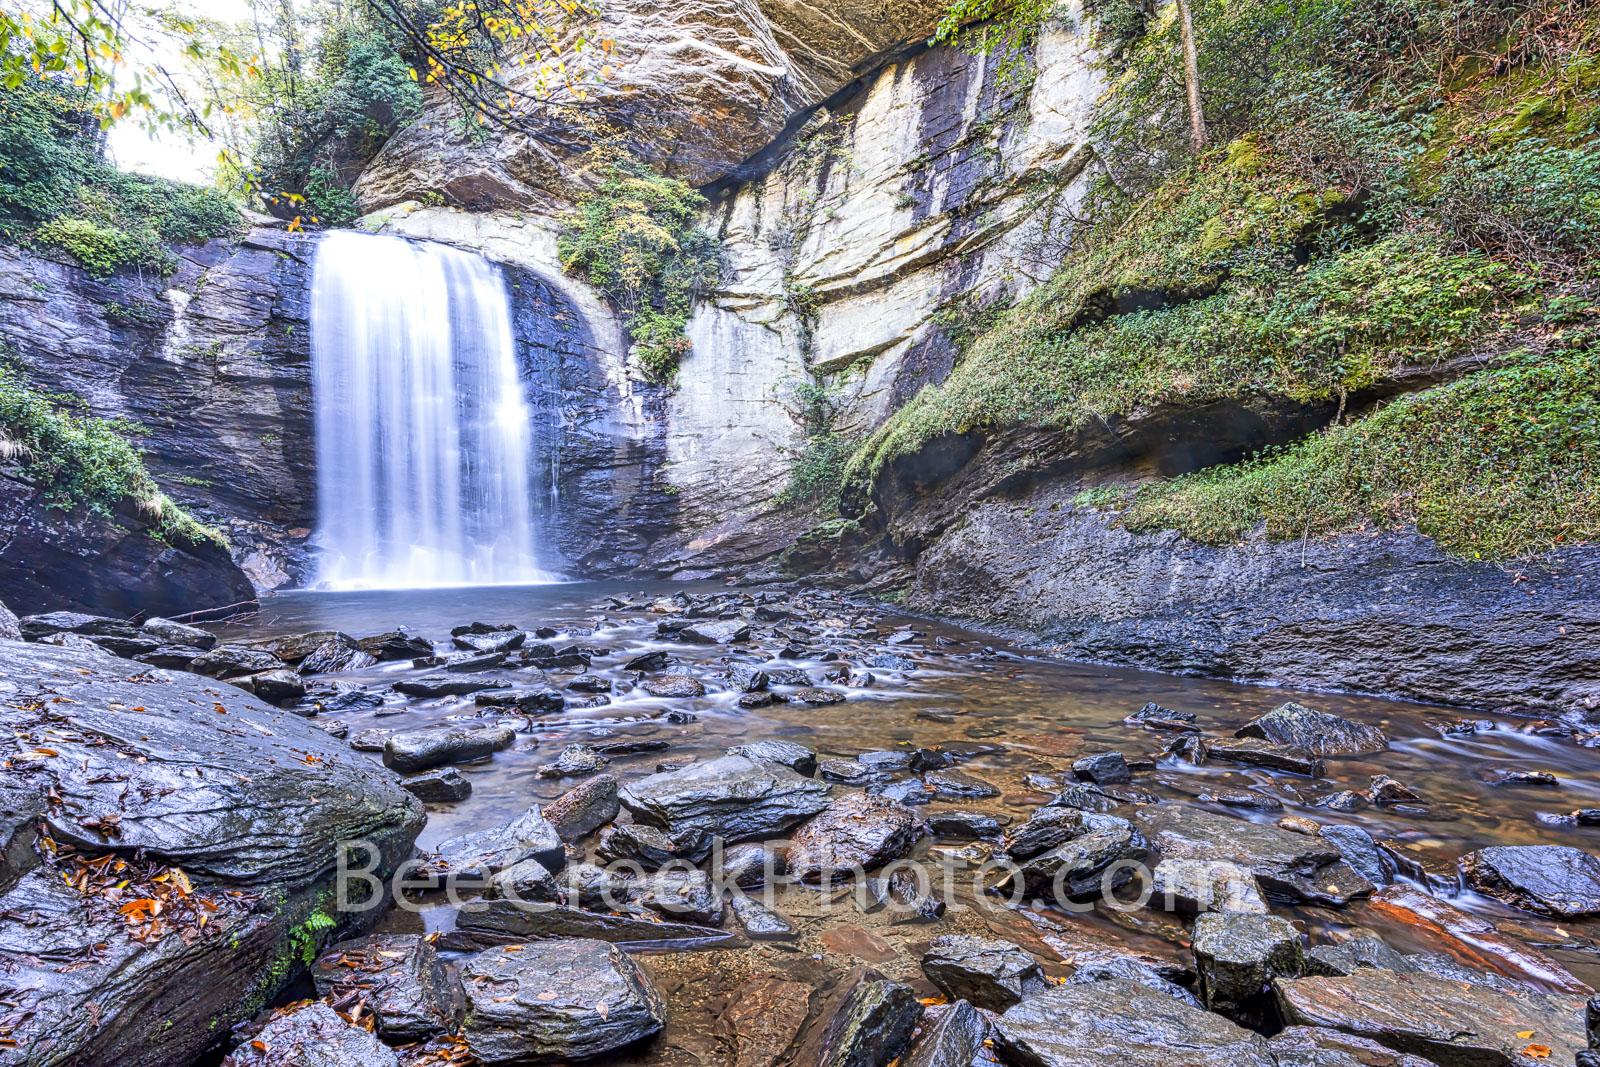 Looking Glass Falls Smoky Mountain  - Took this picture of looking glass falls in the Smoky Mountains National Park. Looking...